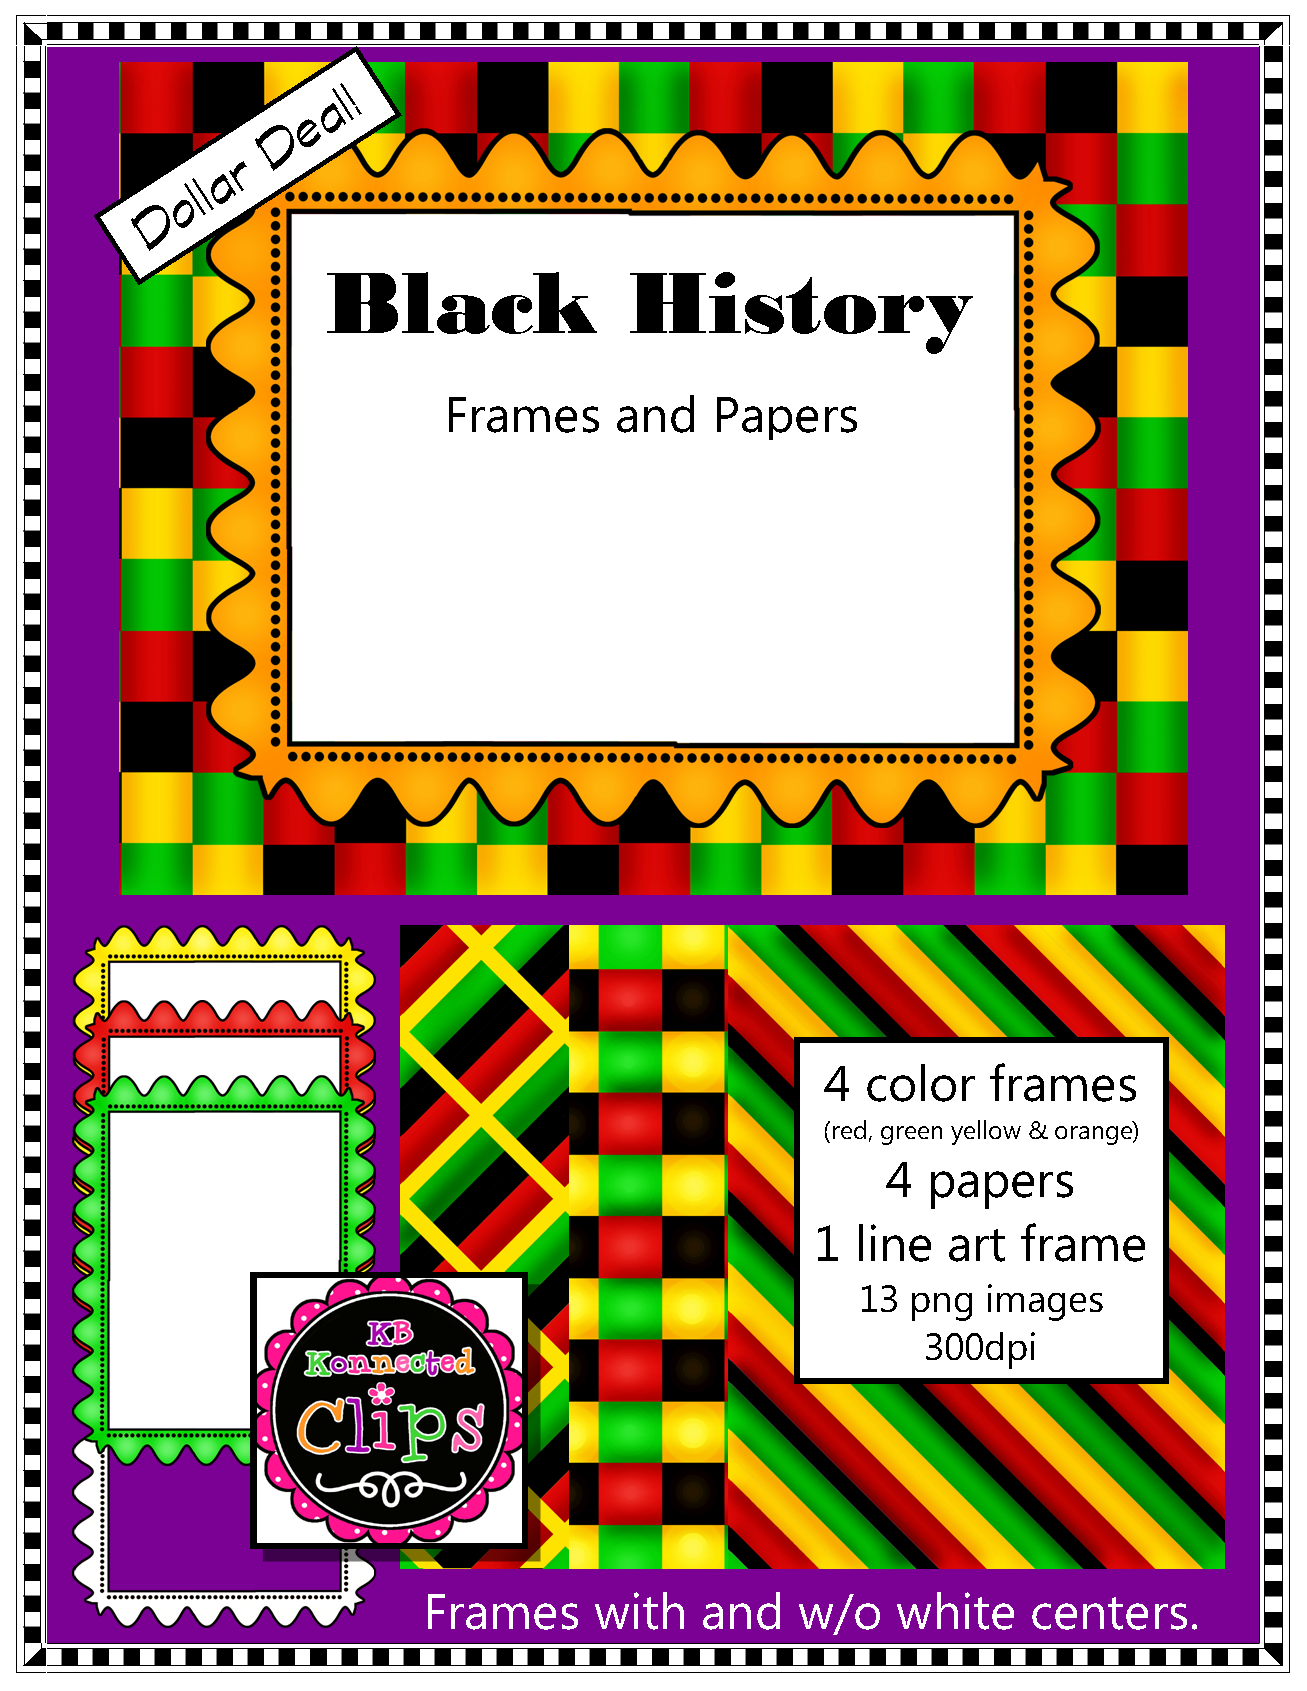 Black History Paper & Frame Collection.